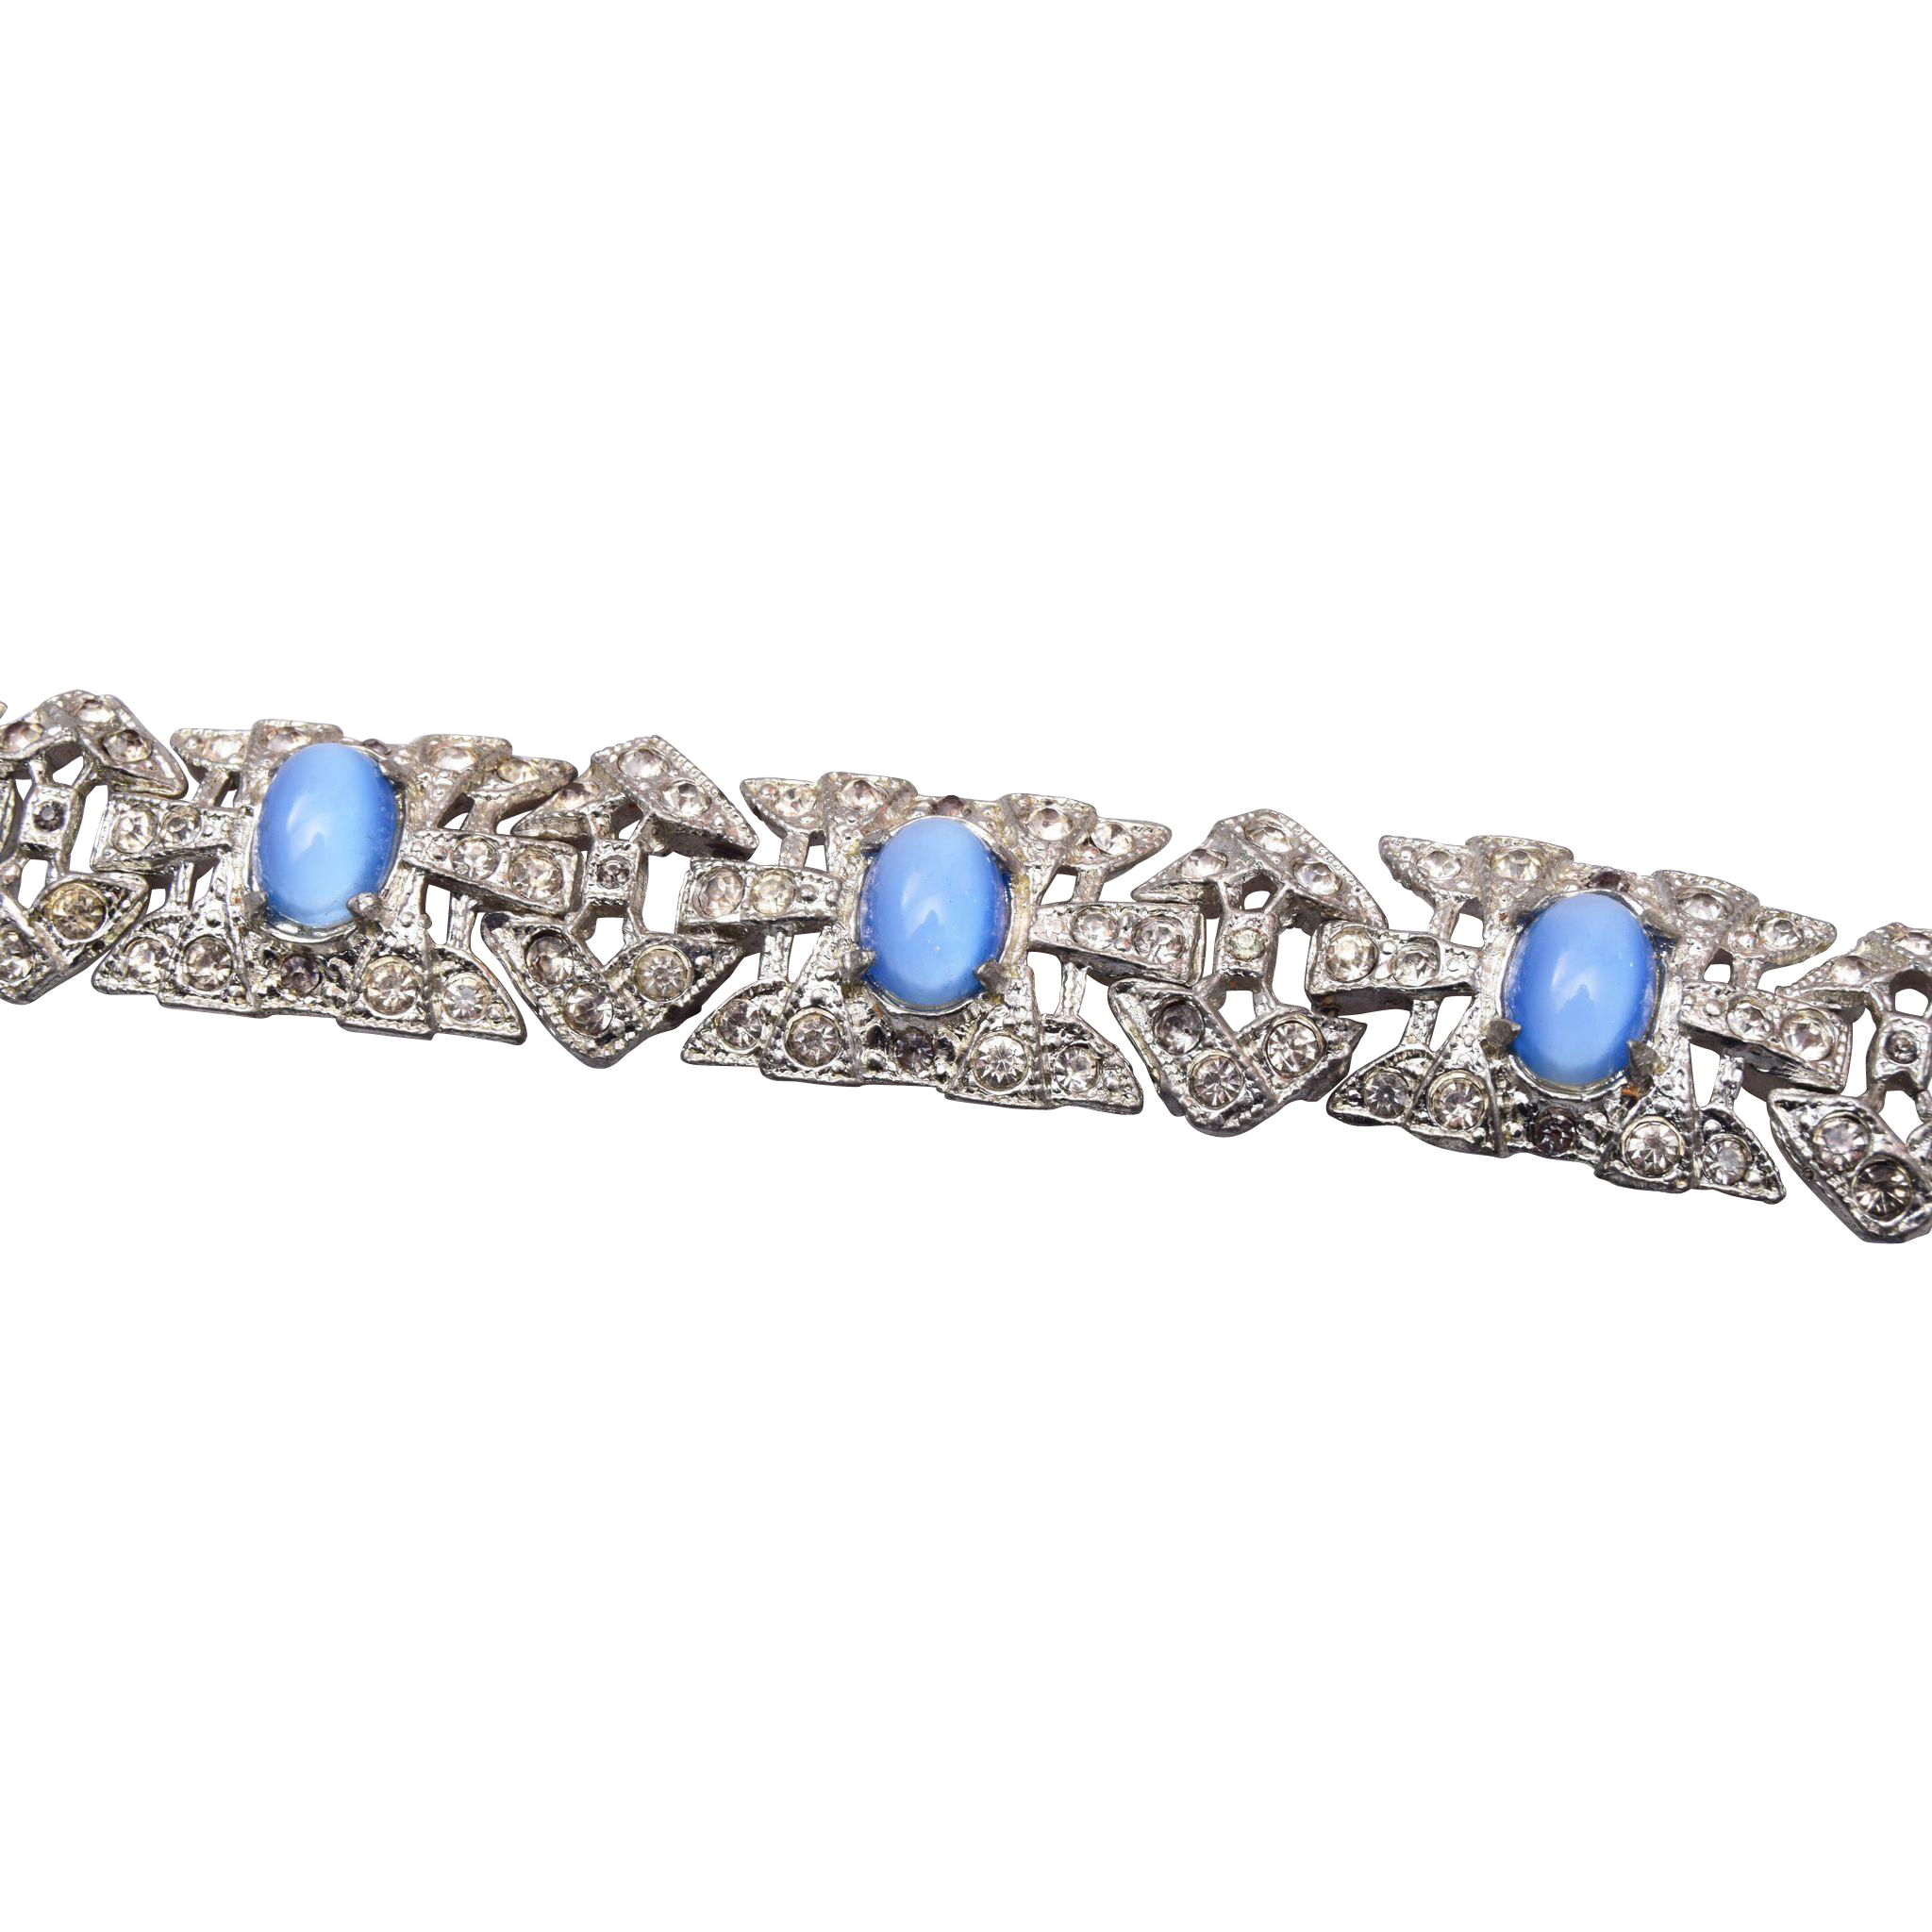 Pot Metal and Rhinestone with Blue Cats Eye Cabochons Bracelet